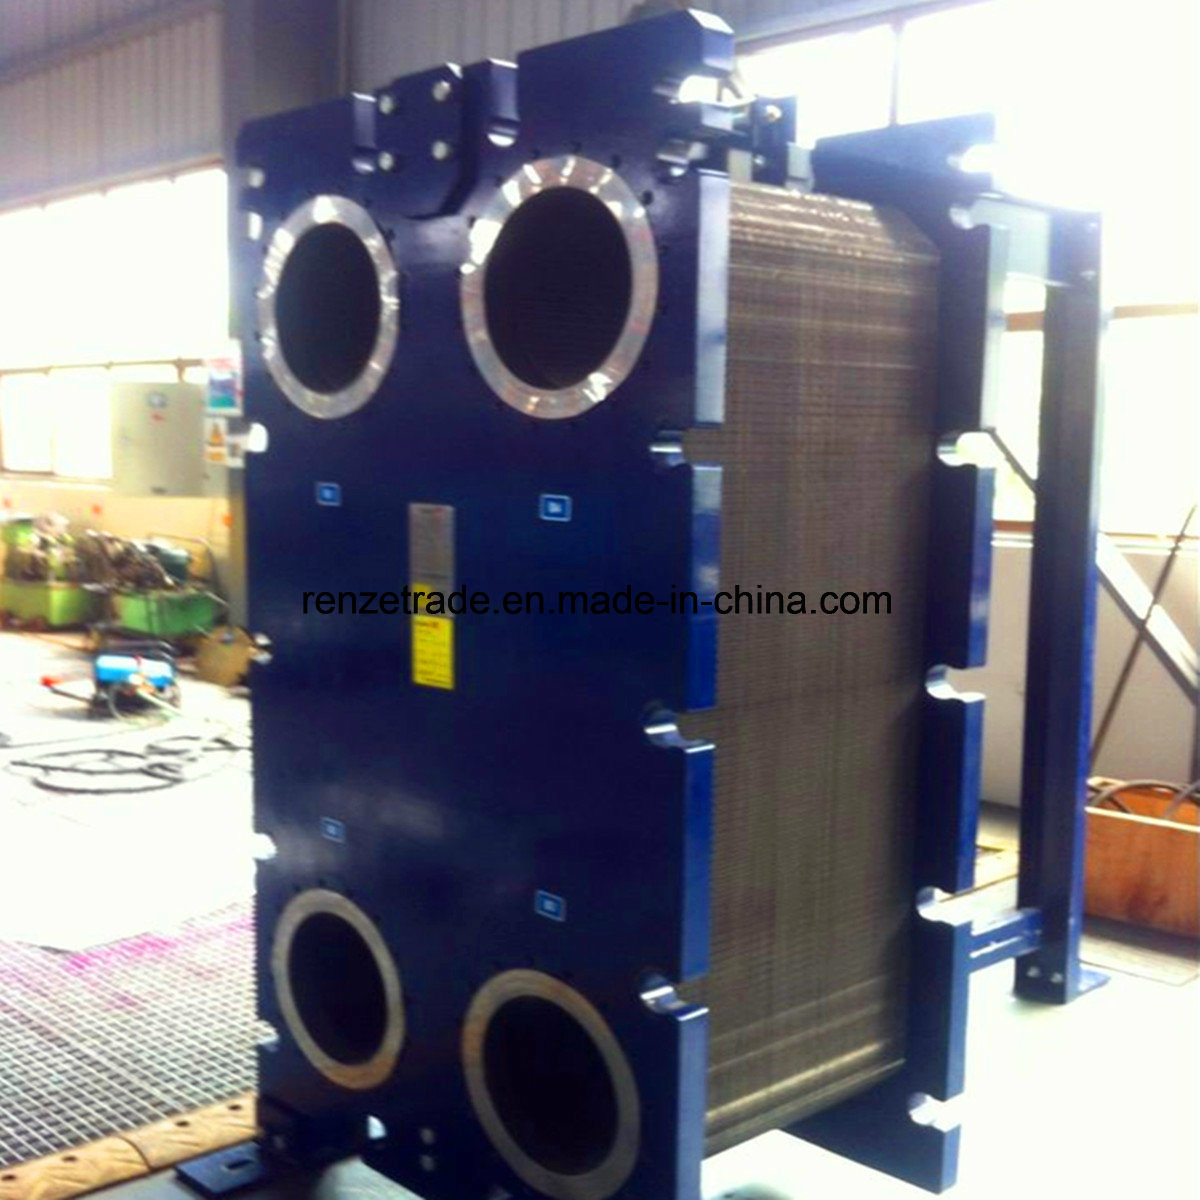 Competitive Price Gasketed Plate Heat Exchanger for Diesel Engine Parts Cooling